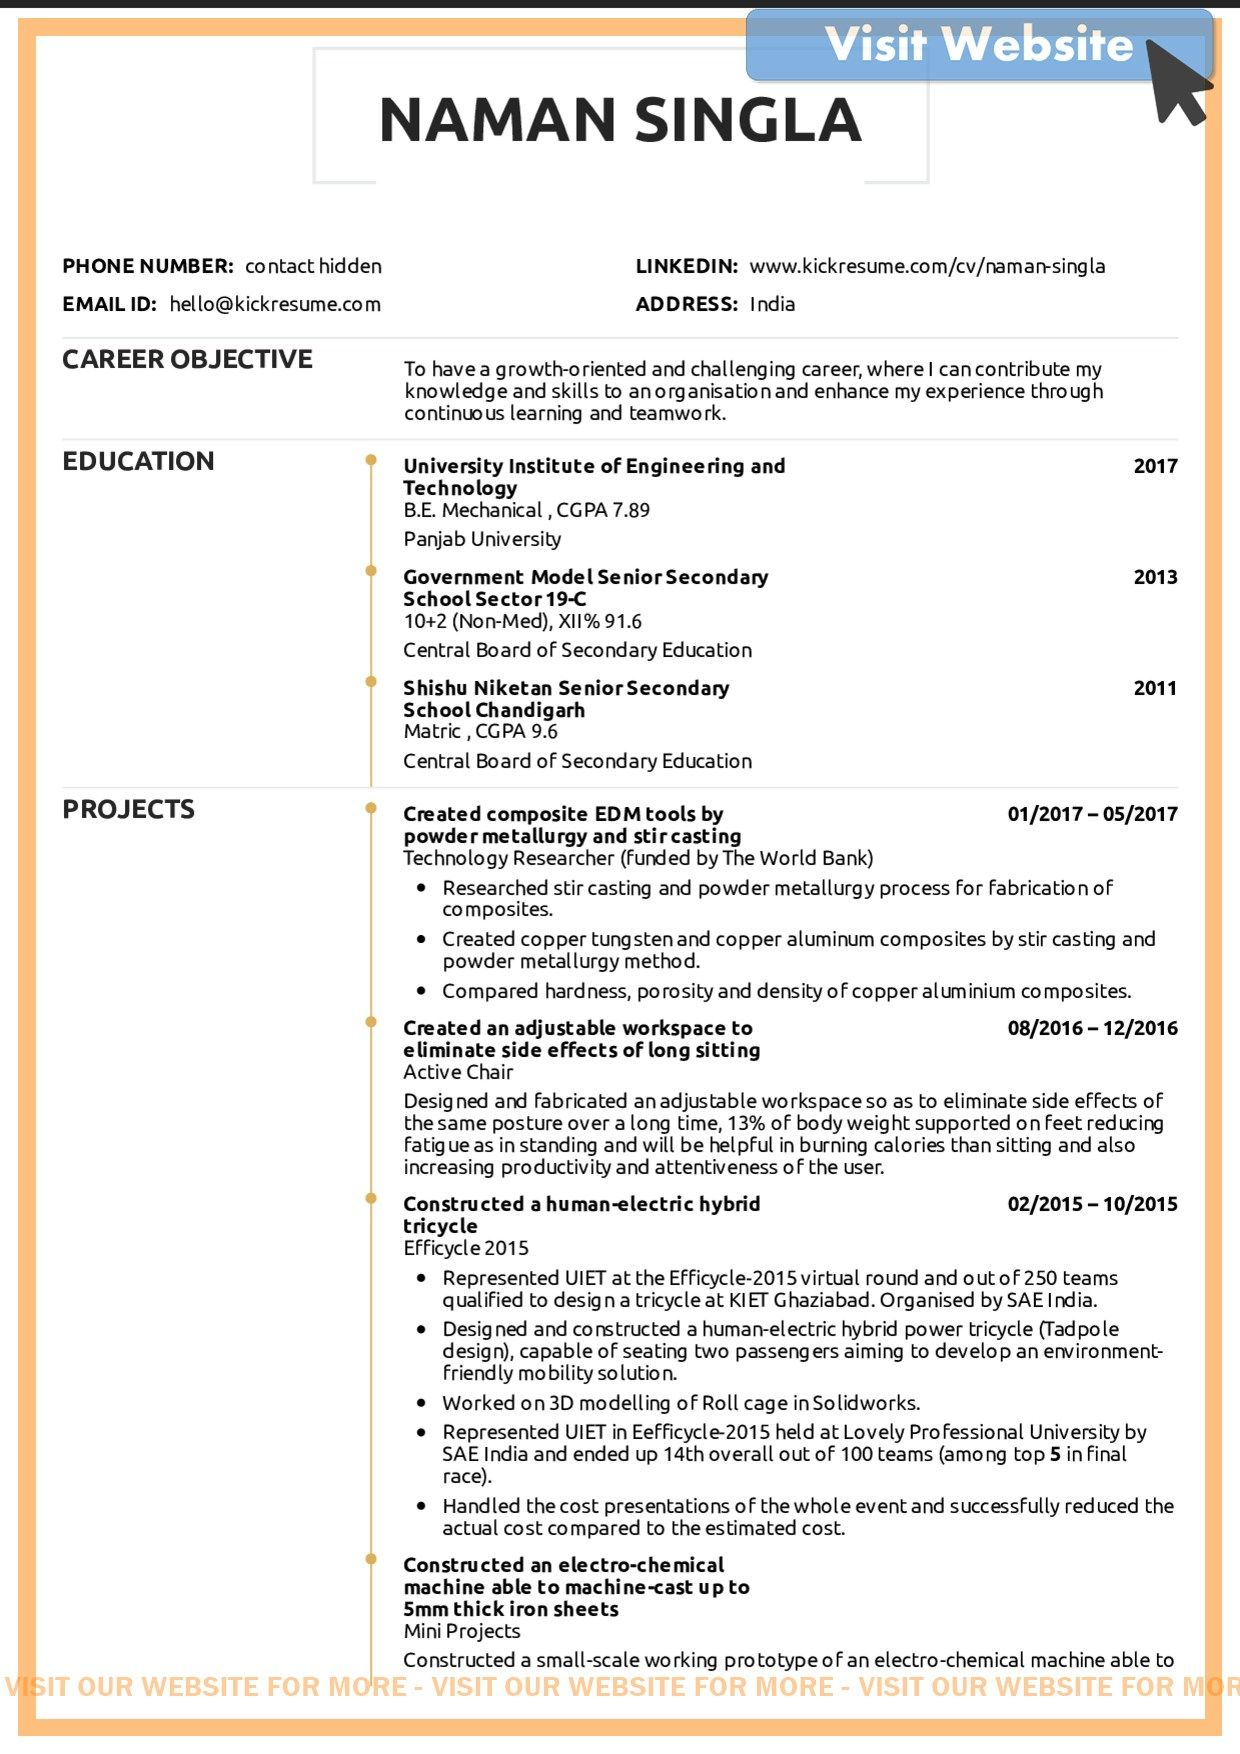 Banking Resume Examples Free 2021 Resume Template Examples Resume Examples Resume Templates